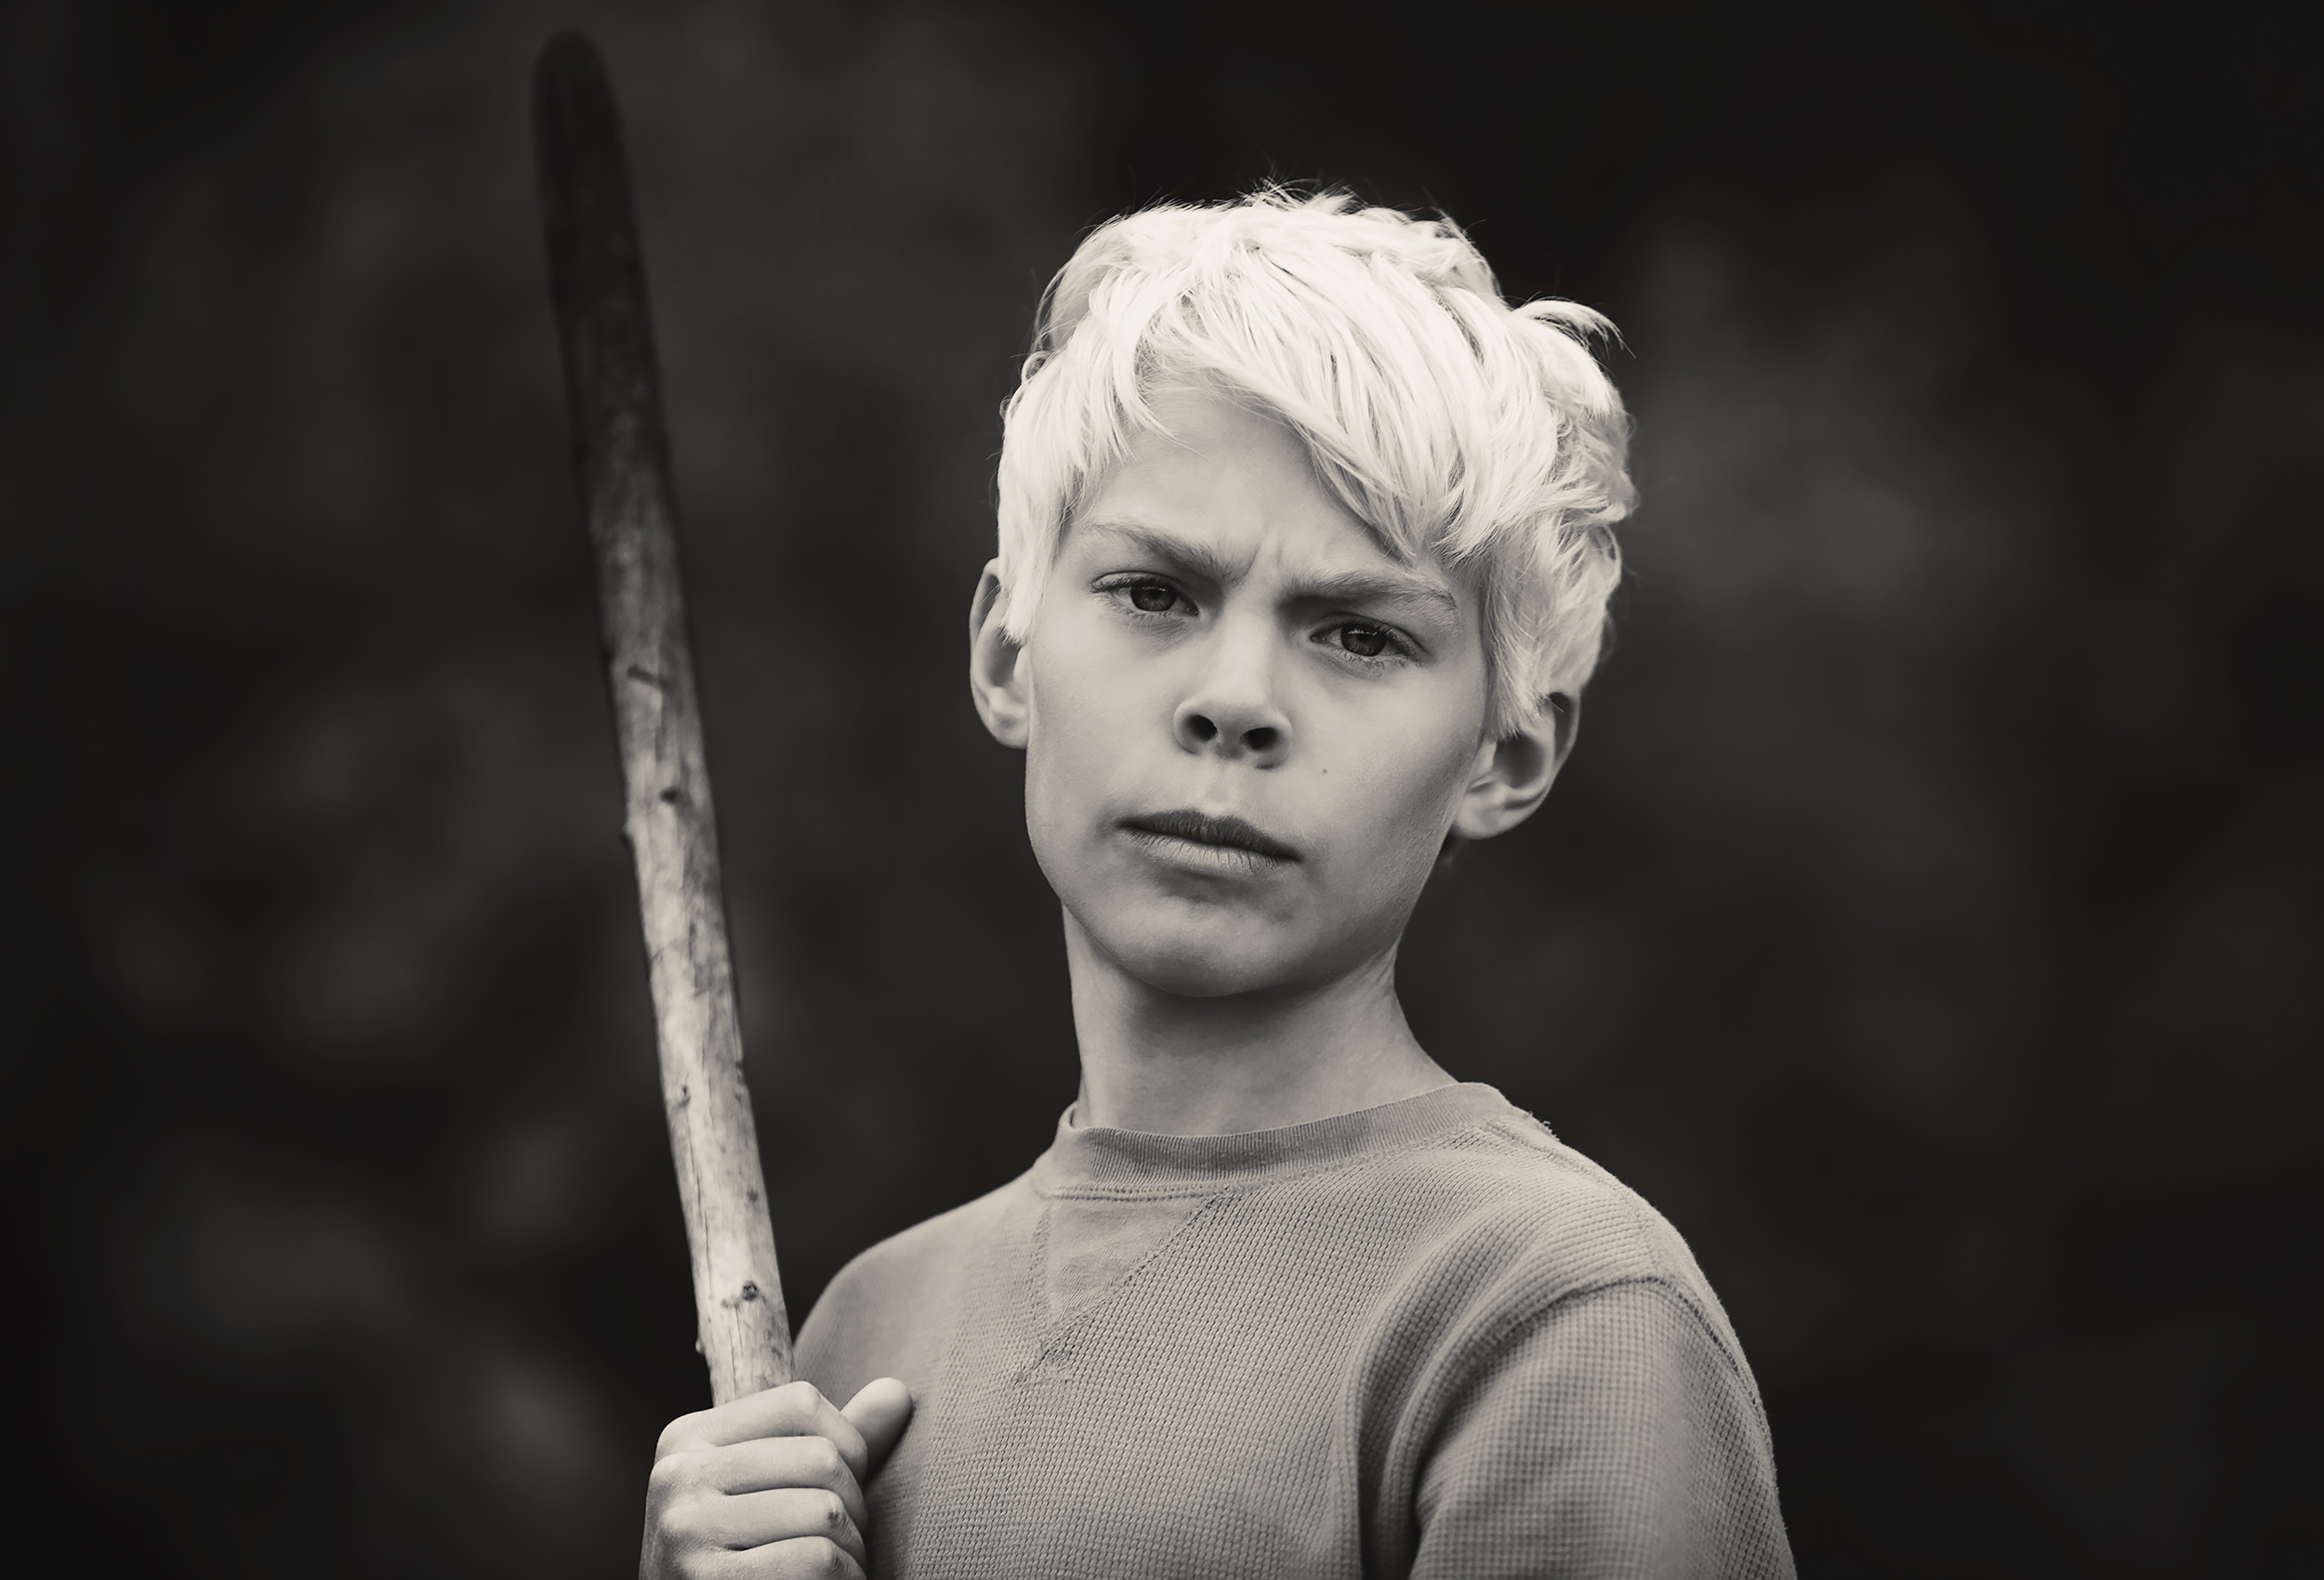 Black and white portrait of a young boy holding a stick